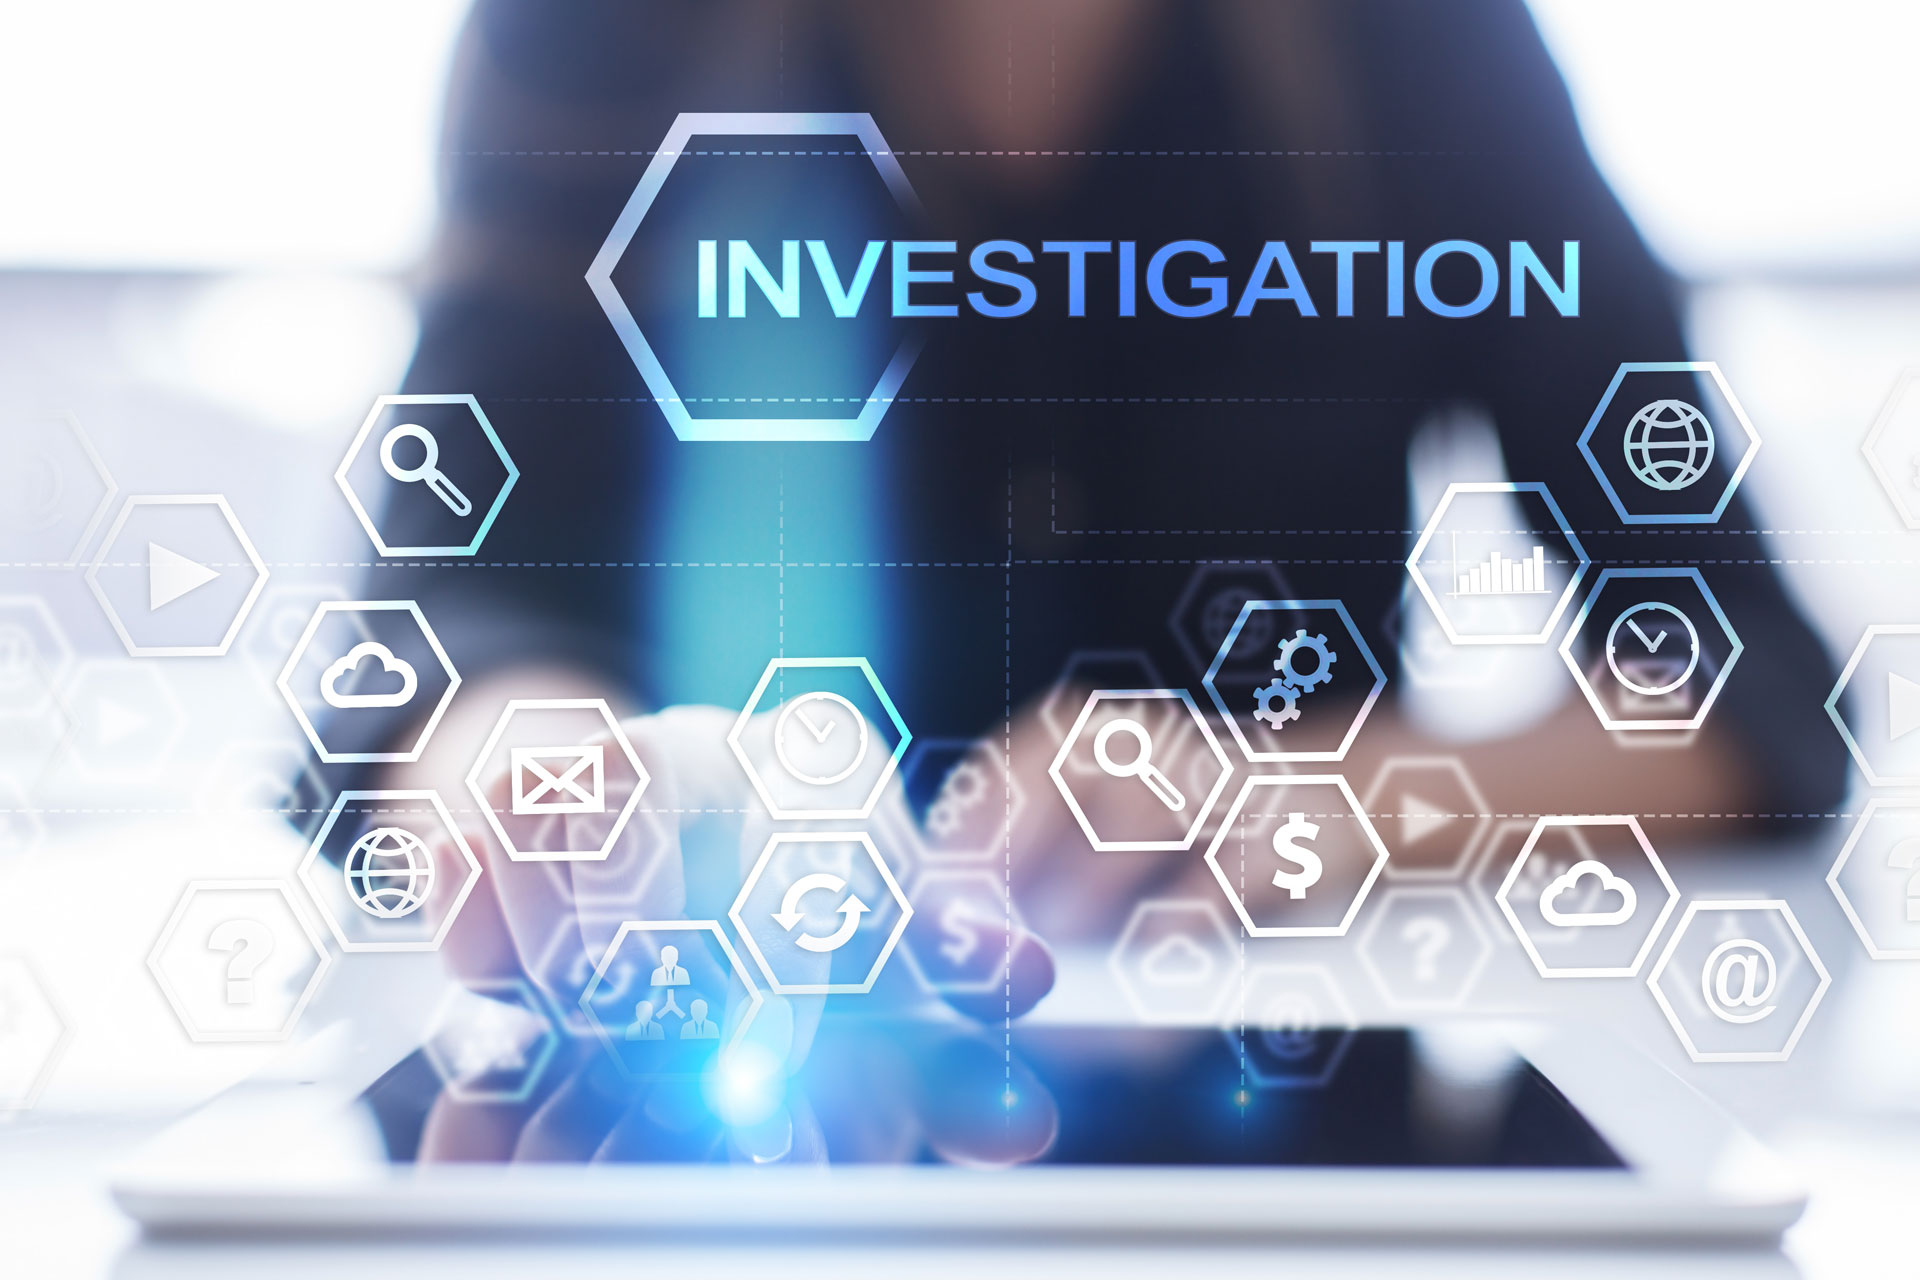 The Advantages of Using Mapping Applications in Law Enforcement - Operations